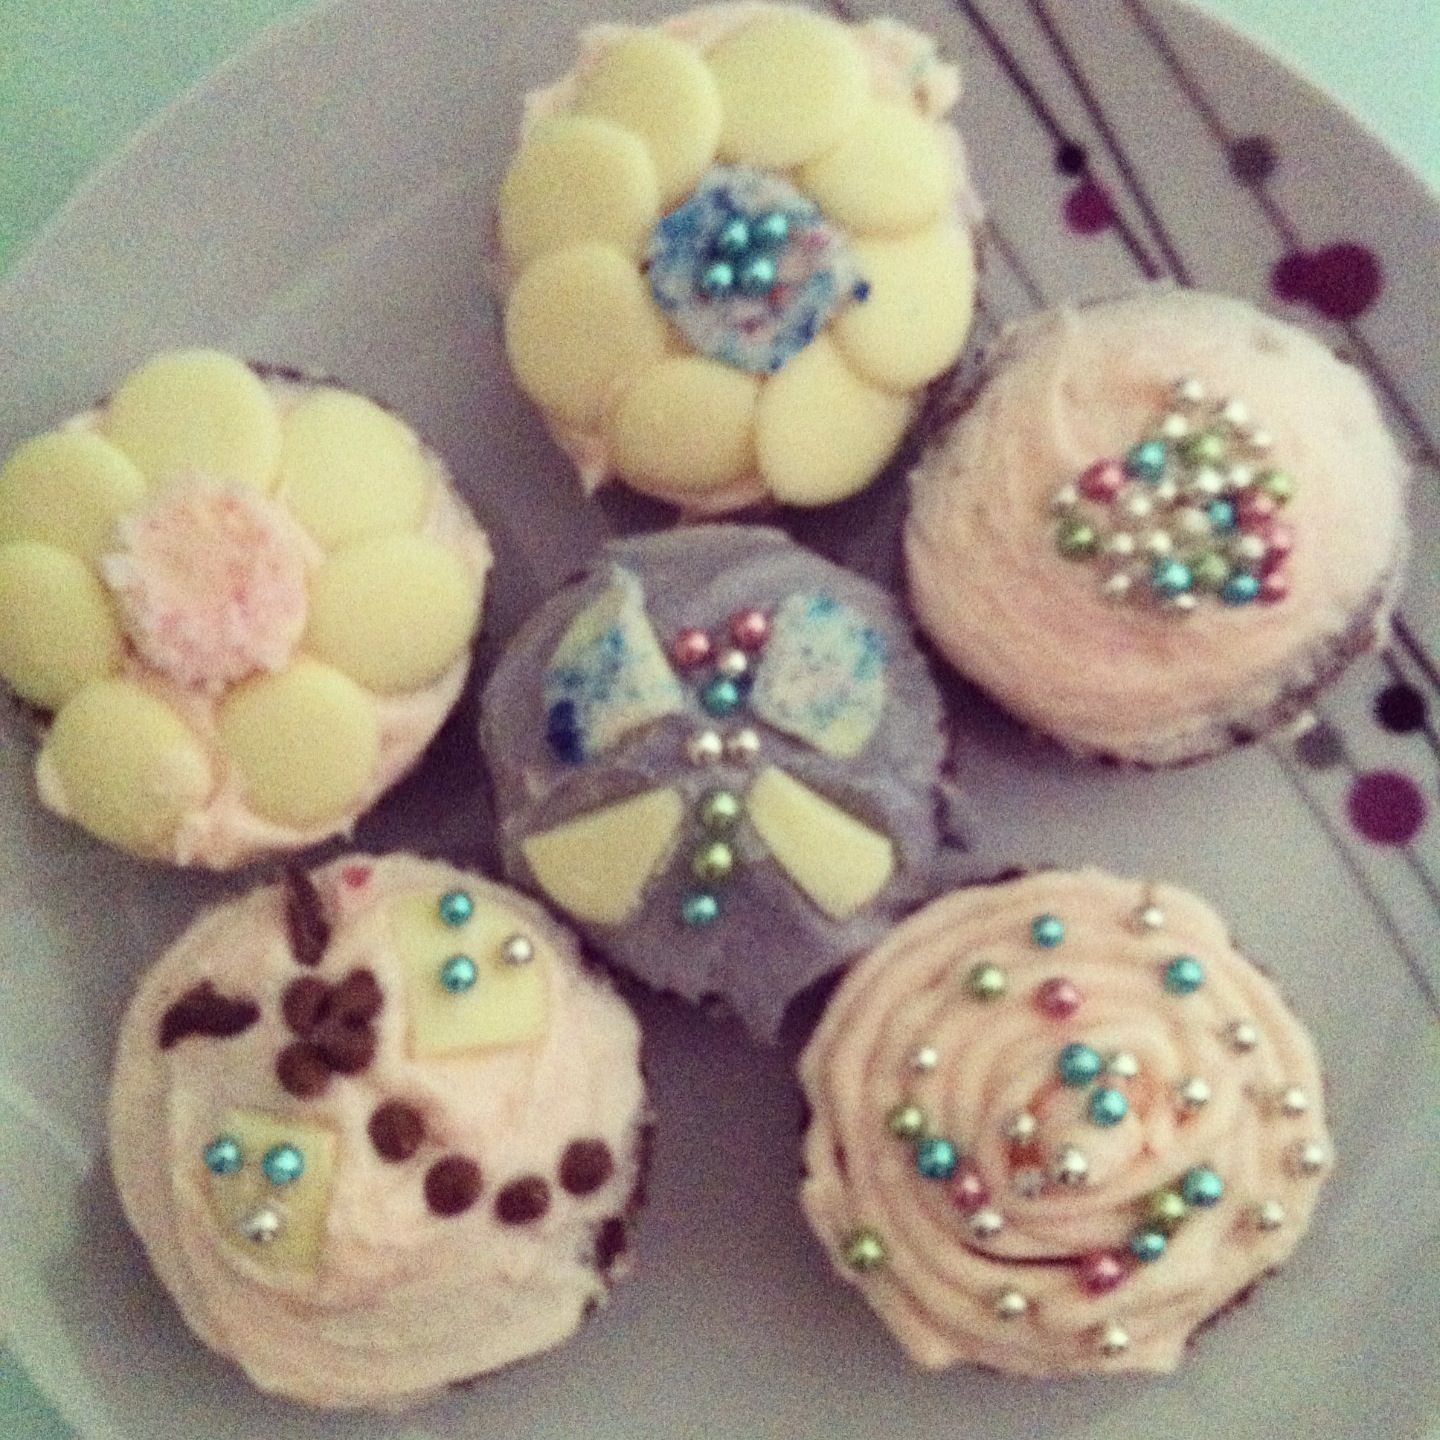 Cupcakes !! So yummy :)